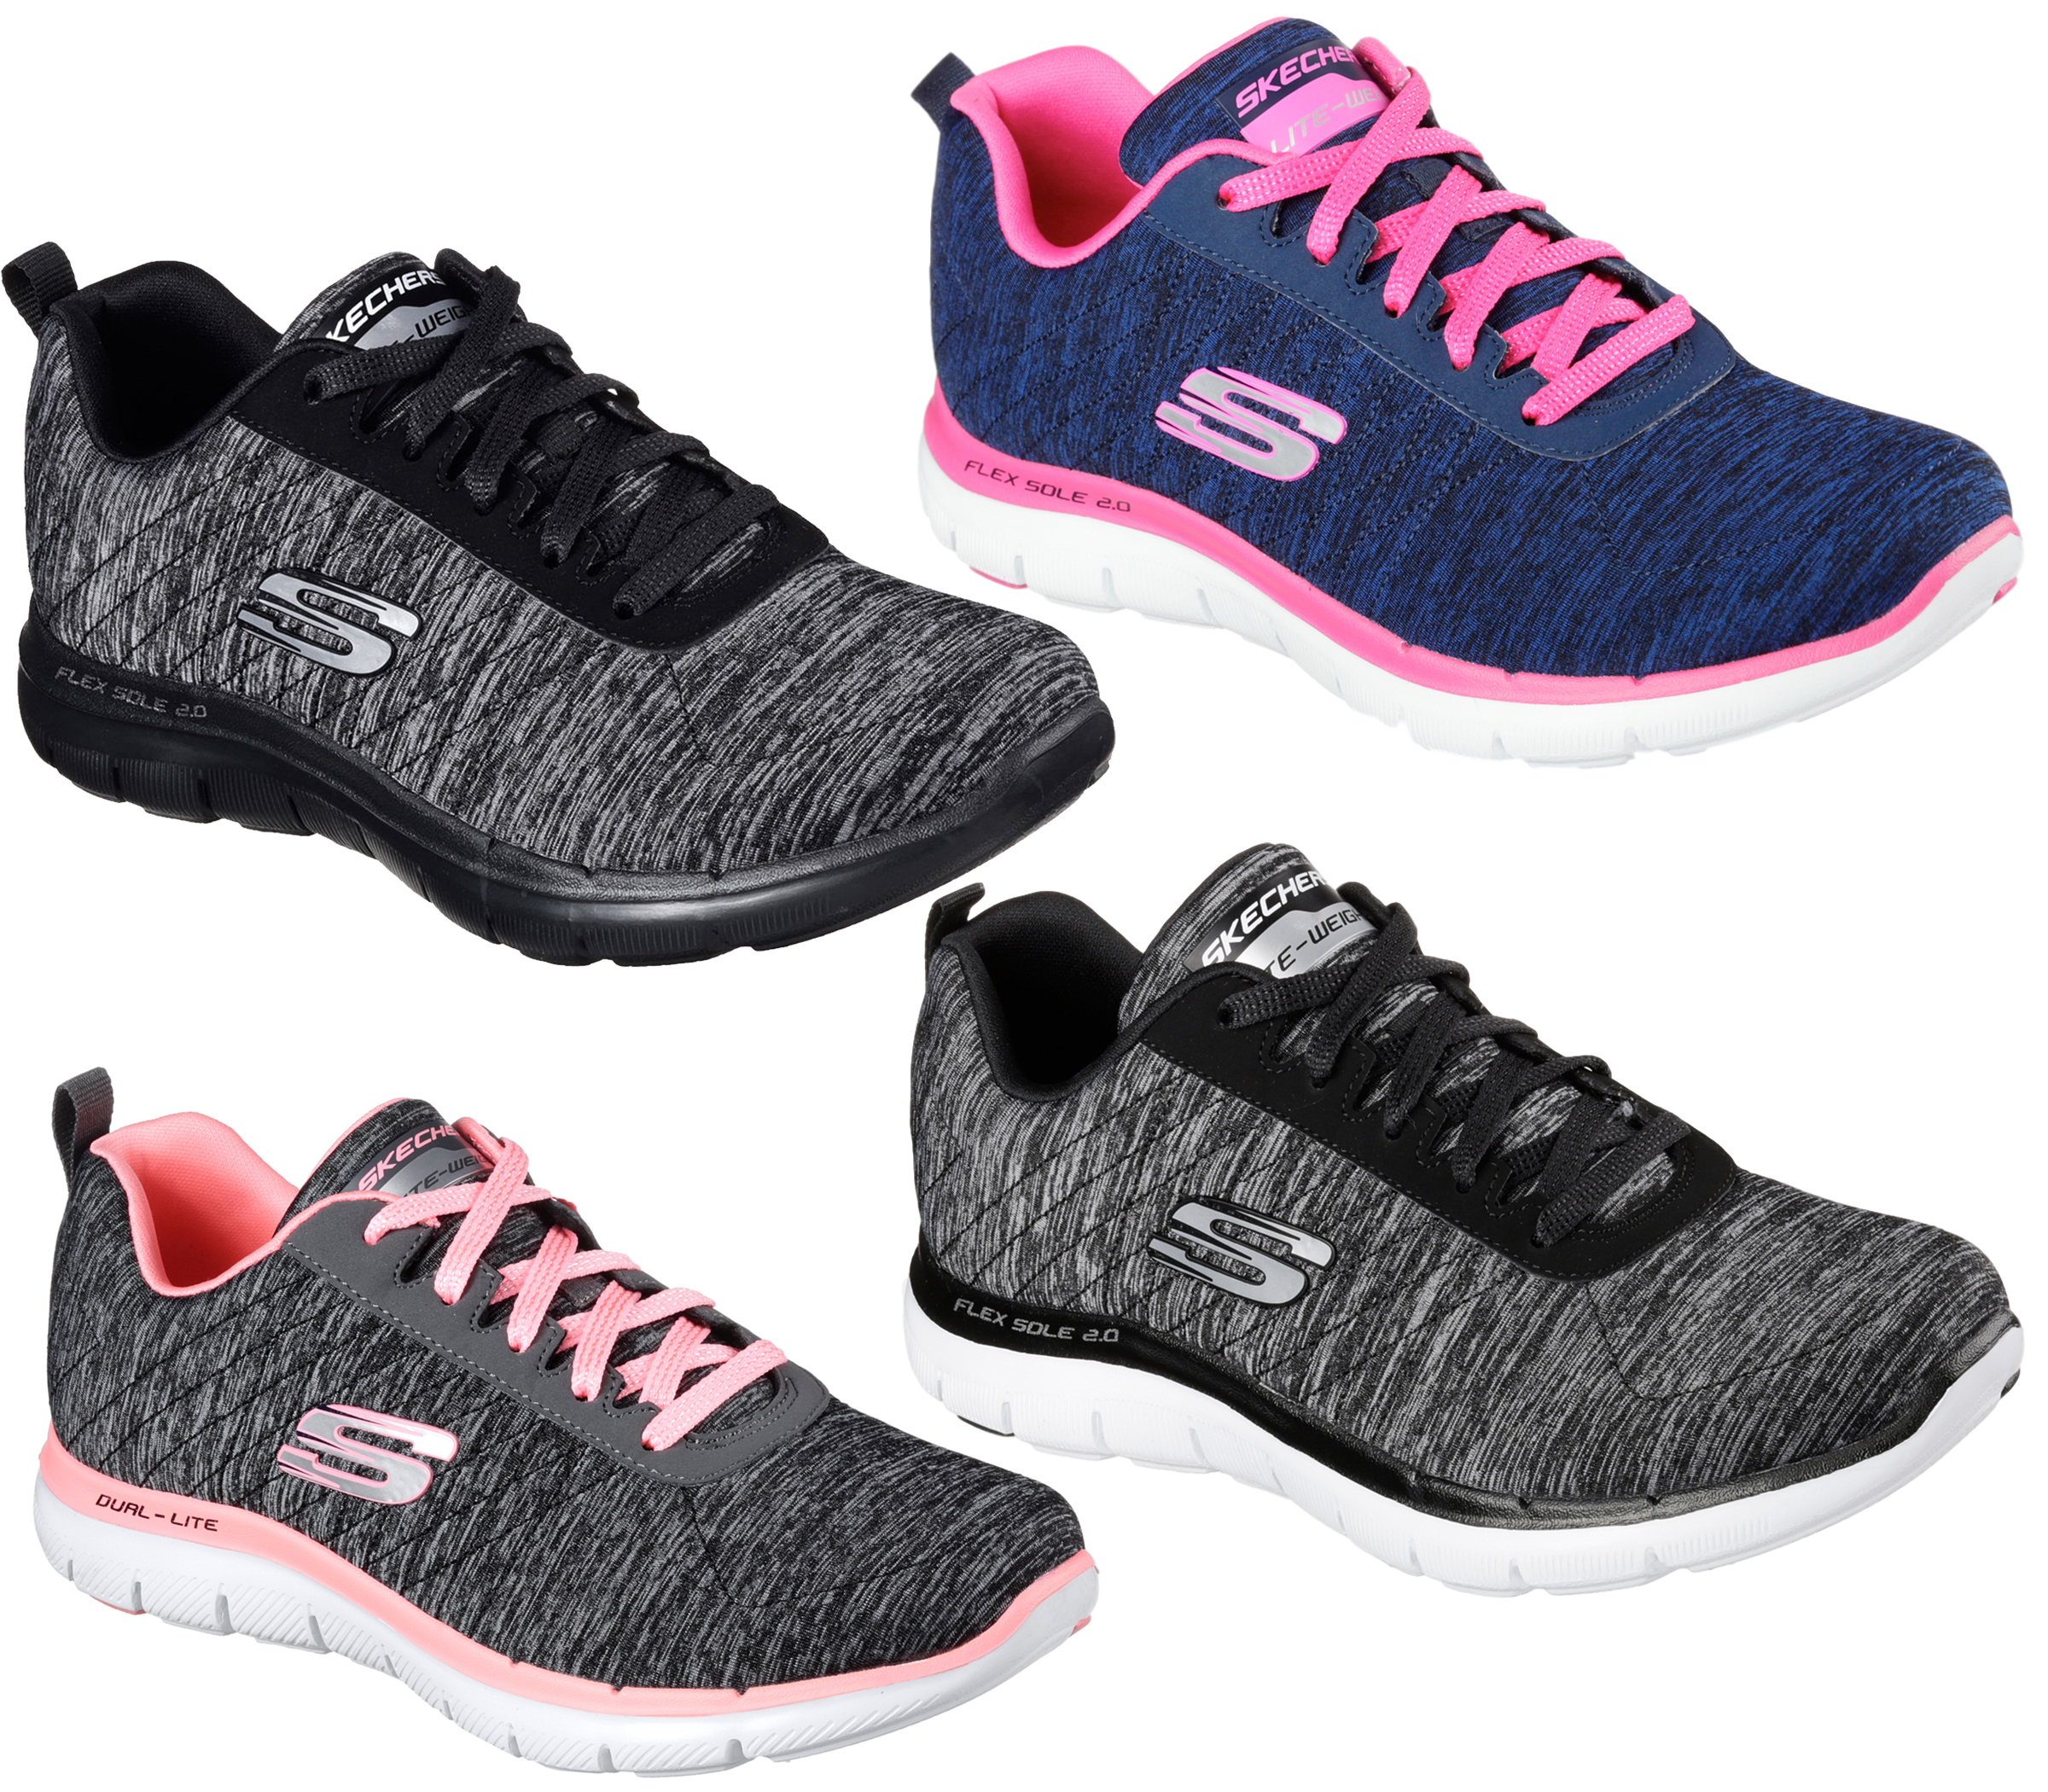 Details about Womens Skechers Flex Appeal 2.0 Memory Foam Lace Up Sports  Trainers Sizes 4 to 8 a22ef5383